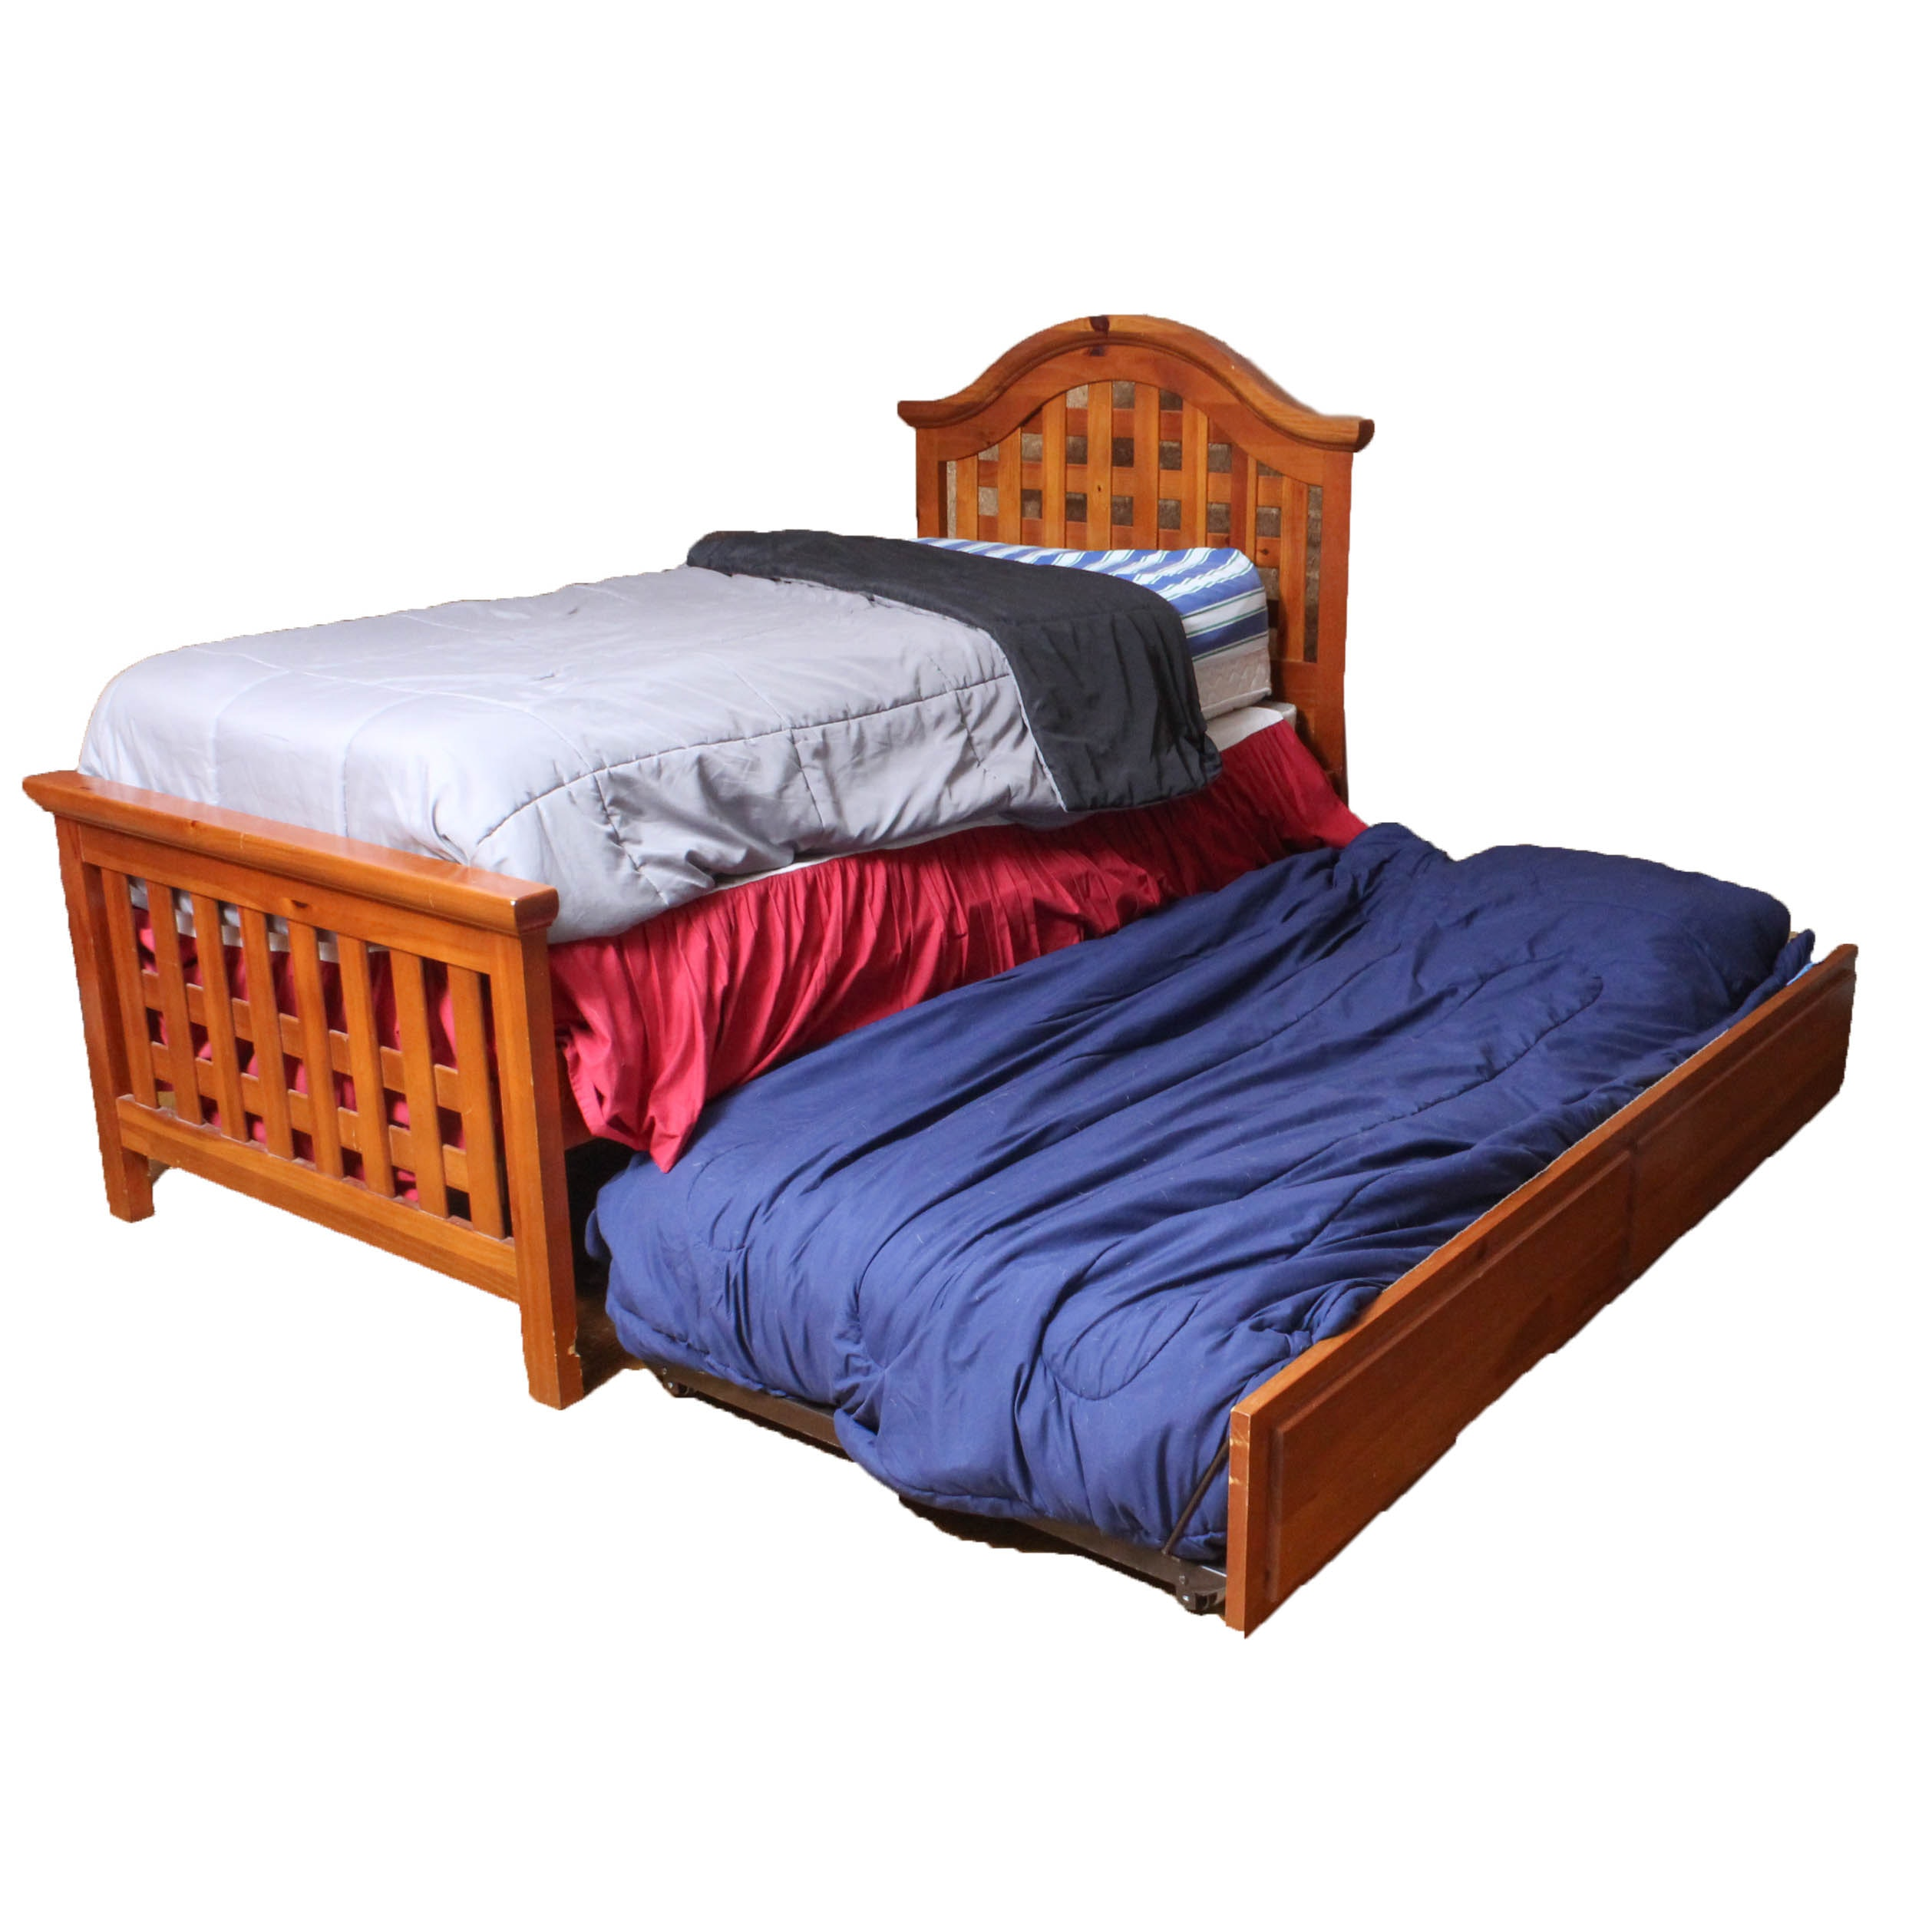 Pine Twin Trundle Bed with Lattice Headboard